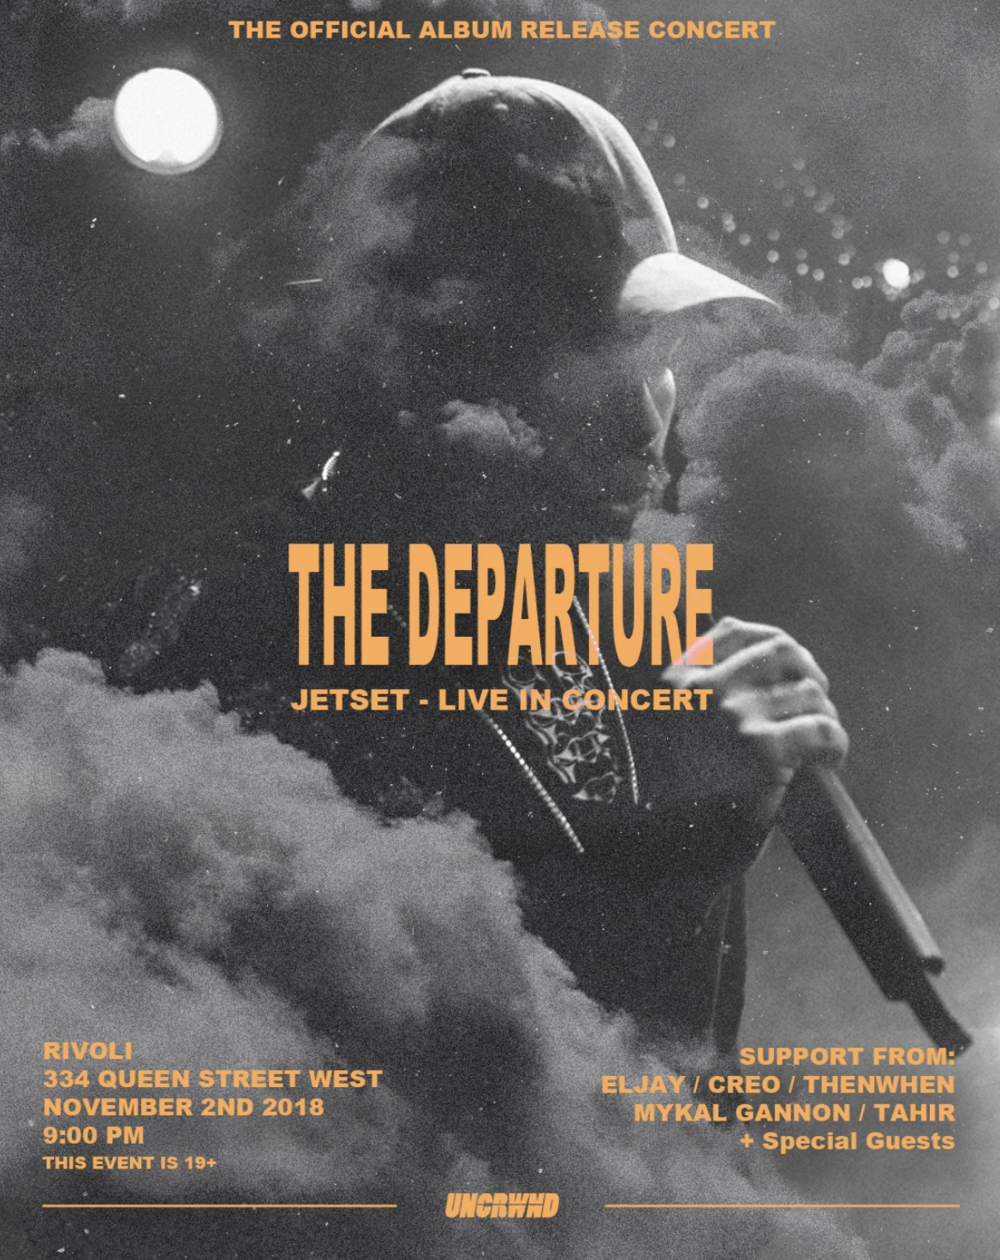 THE DEPARTUREJETSET - LIBVE IN CONCERT - COVER: $10 - $20 ADVMORE INFO